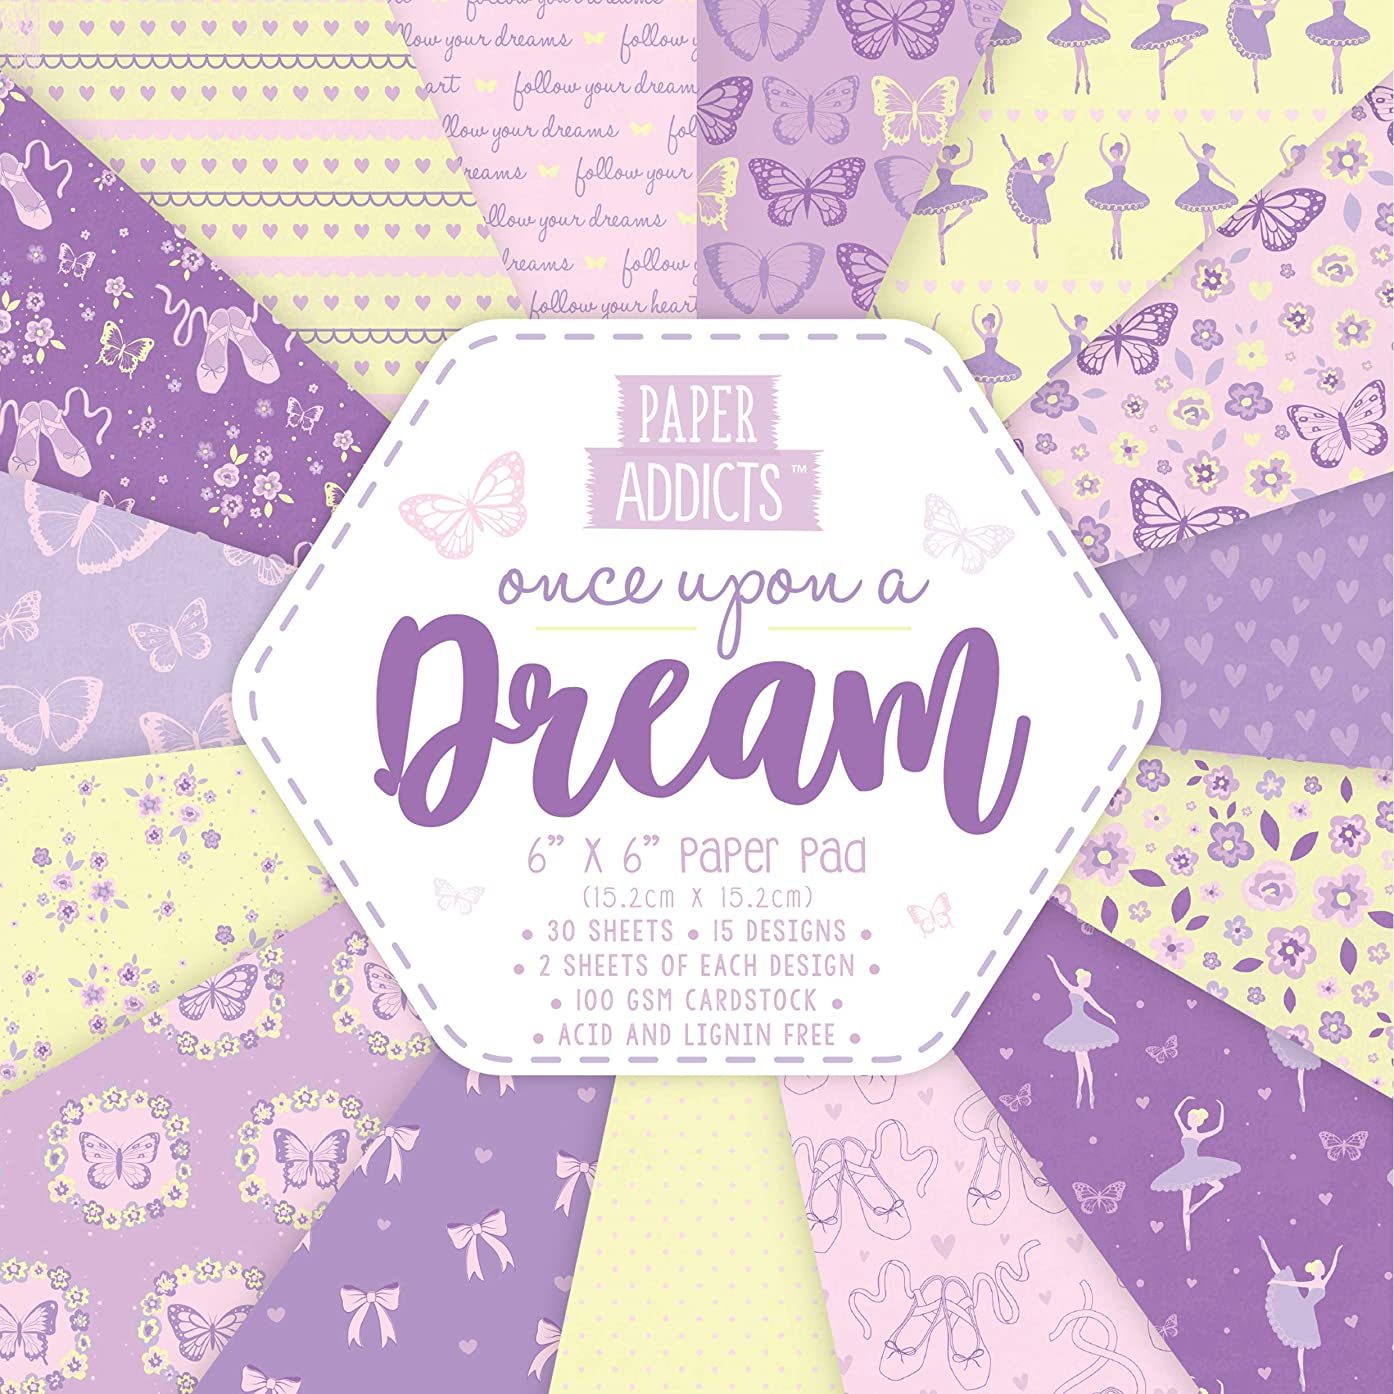 Paper Addicts Upon A Dream Paper Pad-30 Sheets-15 Designs-100GSM-Acid & Lignin Free-for Card Making, Papercraft, Scrapbooking, Die Cutting and Home Décor, Multicolour, 6